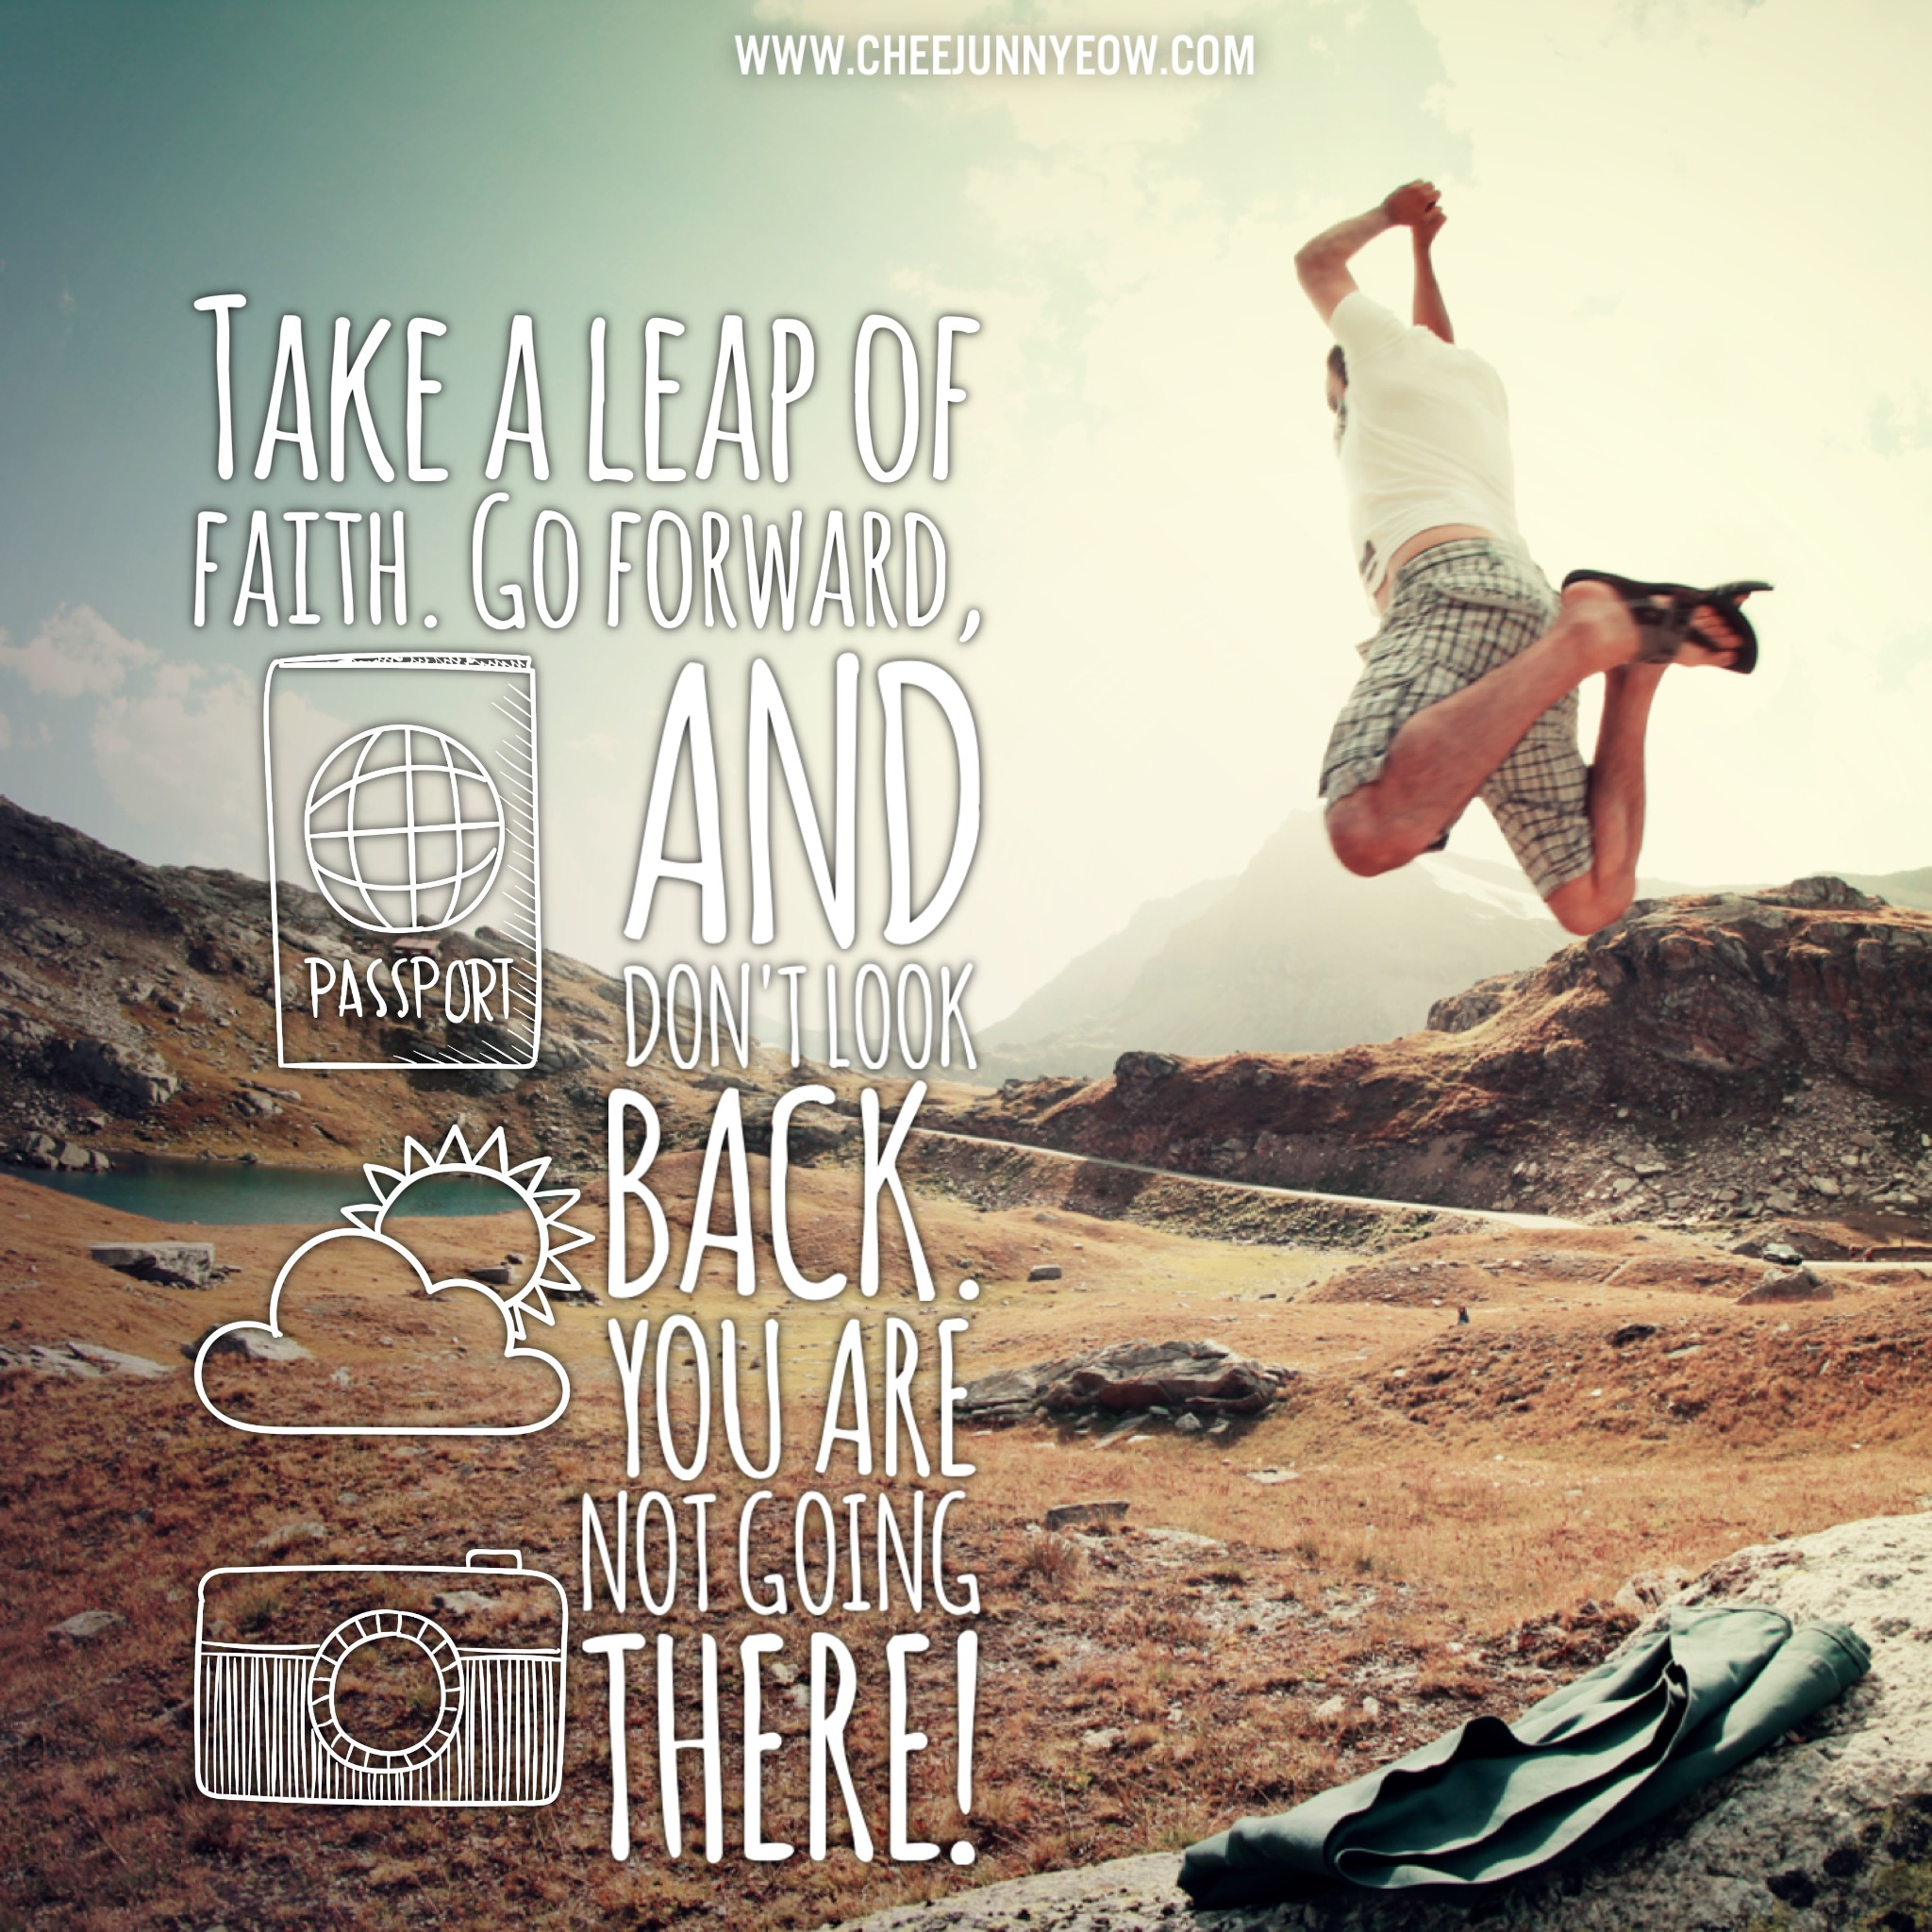 take a leap of faith. go forward, and don't look back. you are not going there